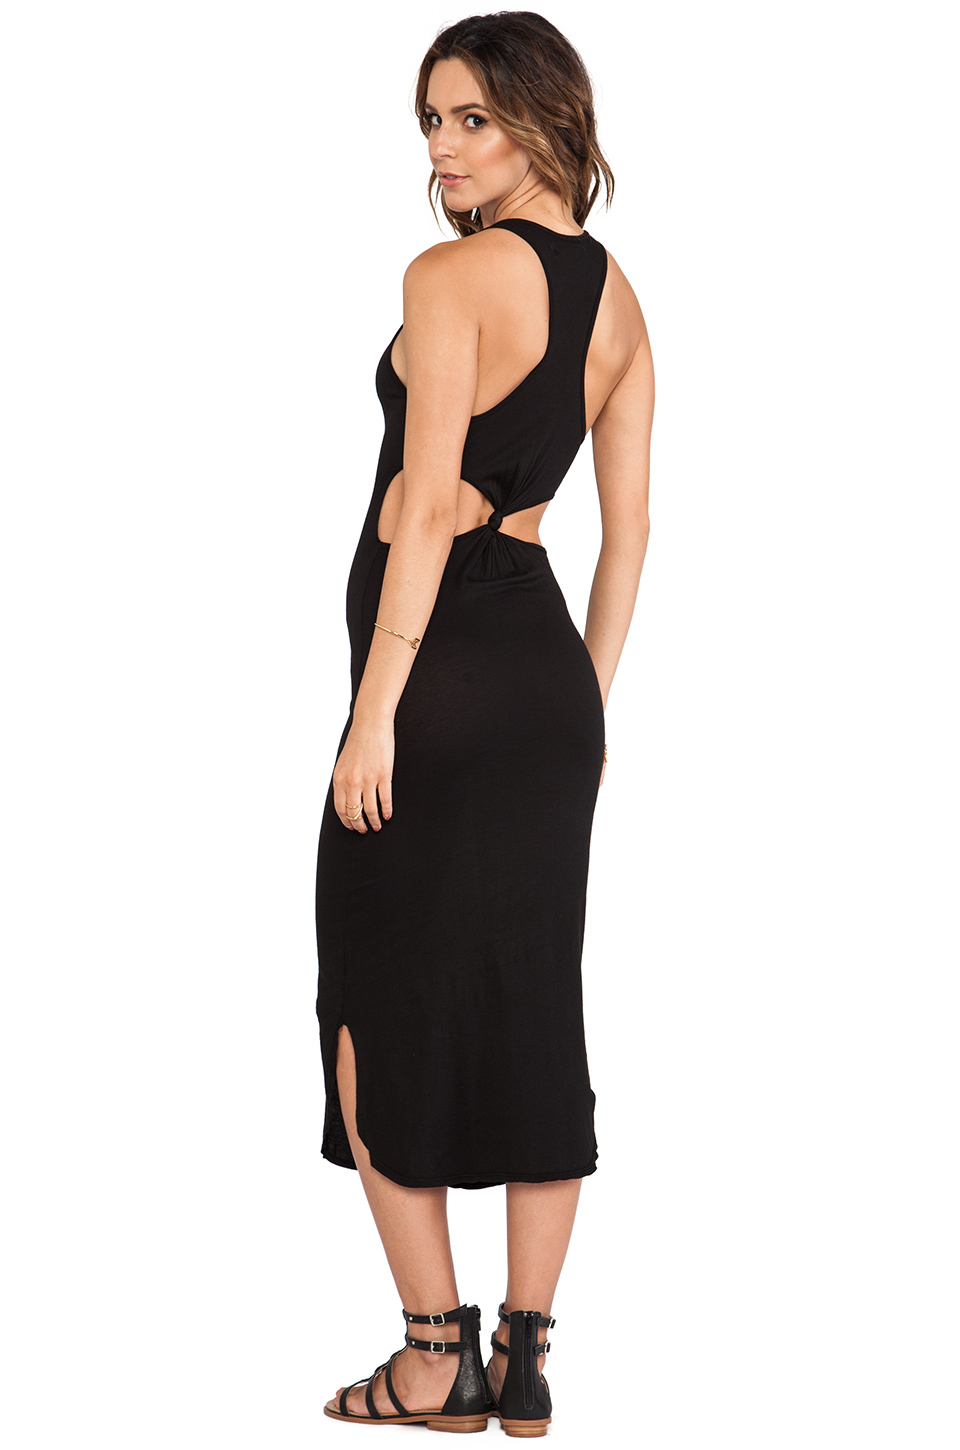 I love classic pieces with a twist like this simple maxi dress with cutouts. 291, $89